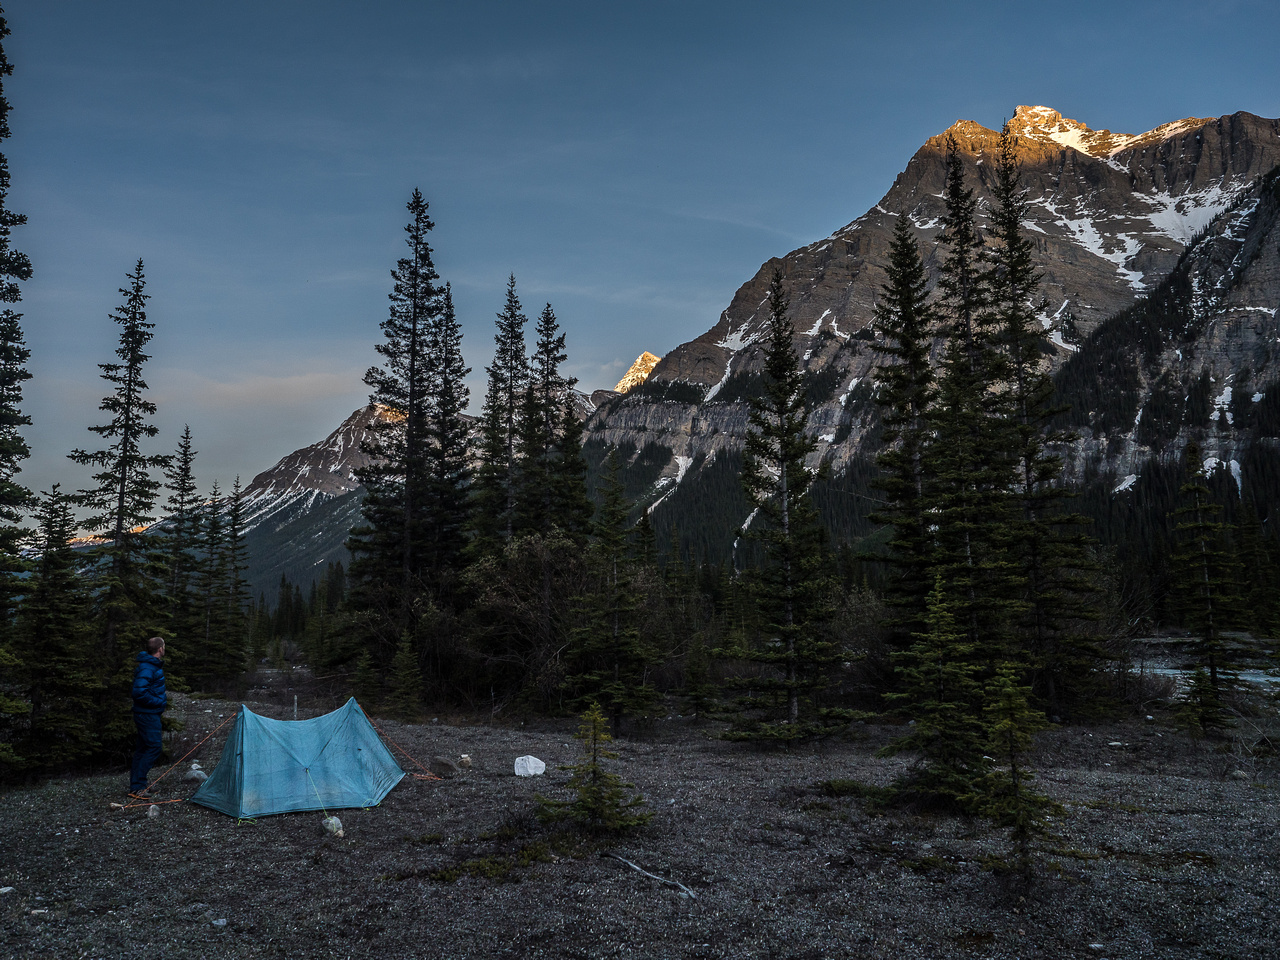 Anton takes in the rising sun from camp, early on Monday morning.